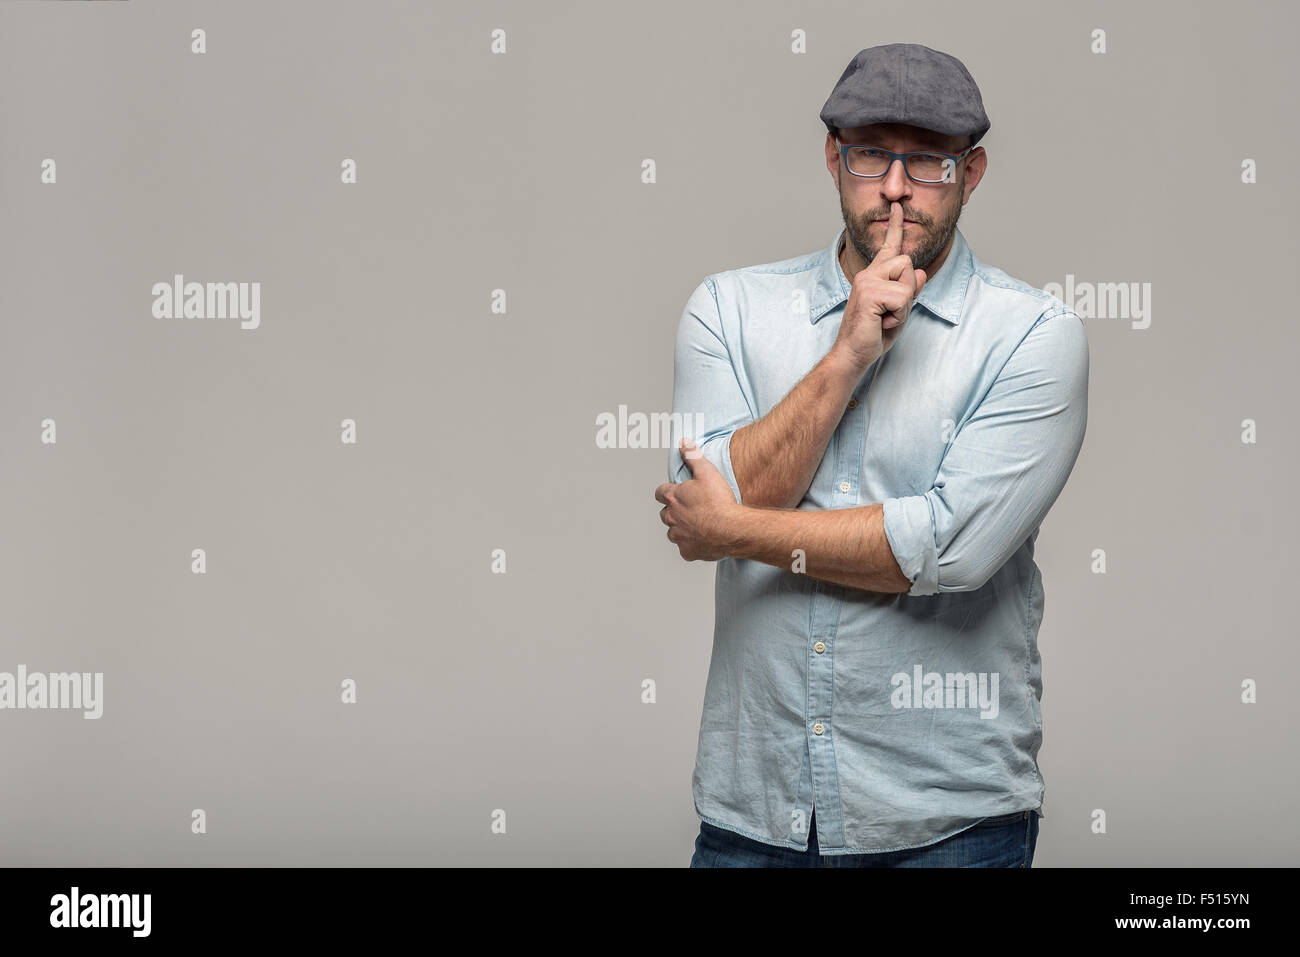 Middle-aged man wearing glasses and a cloth cap standing with a serious expression making a shushing gesture with - Stock Image